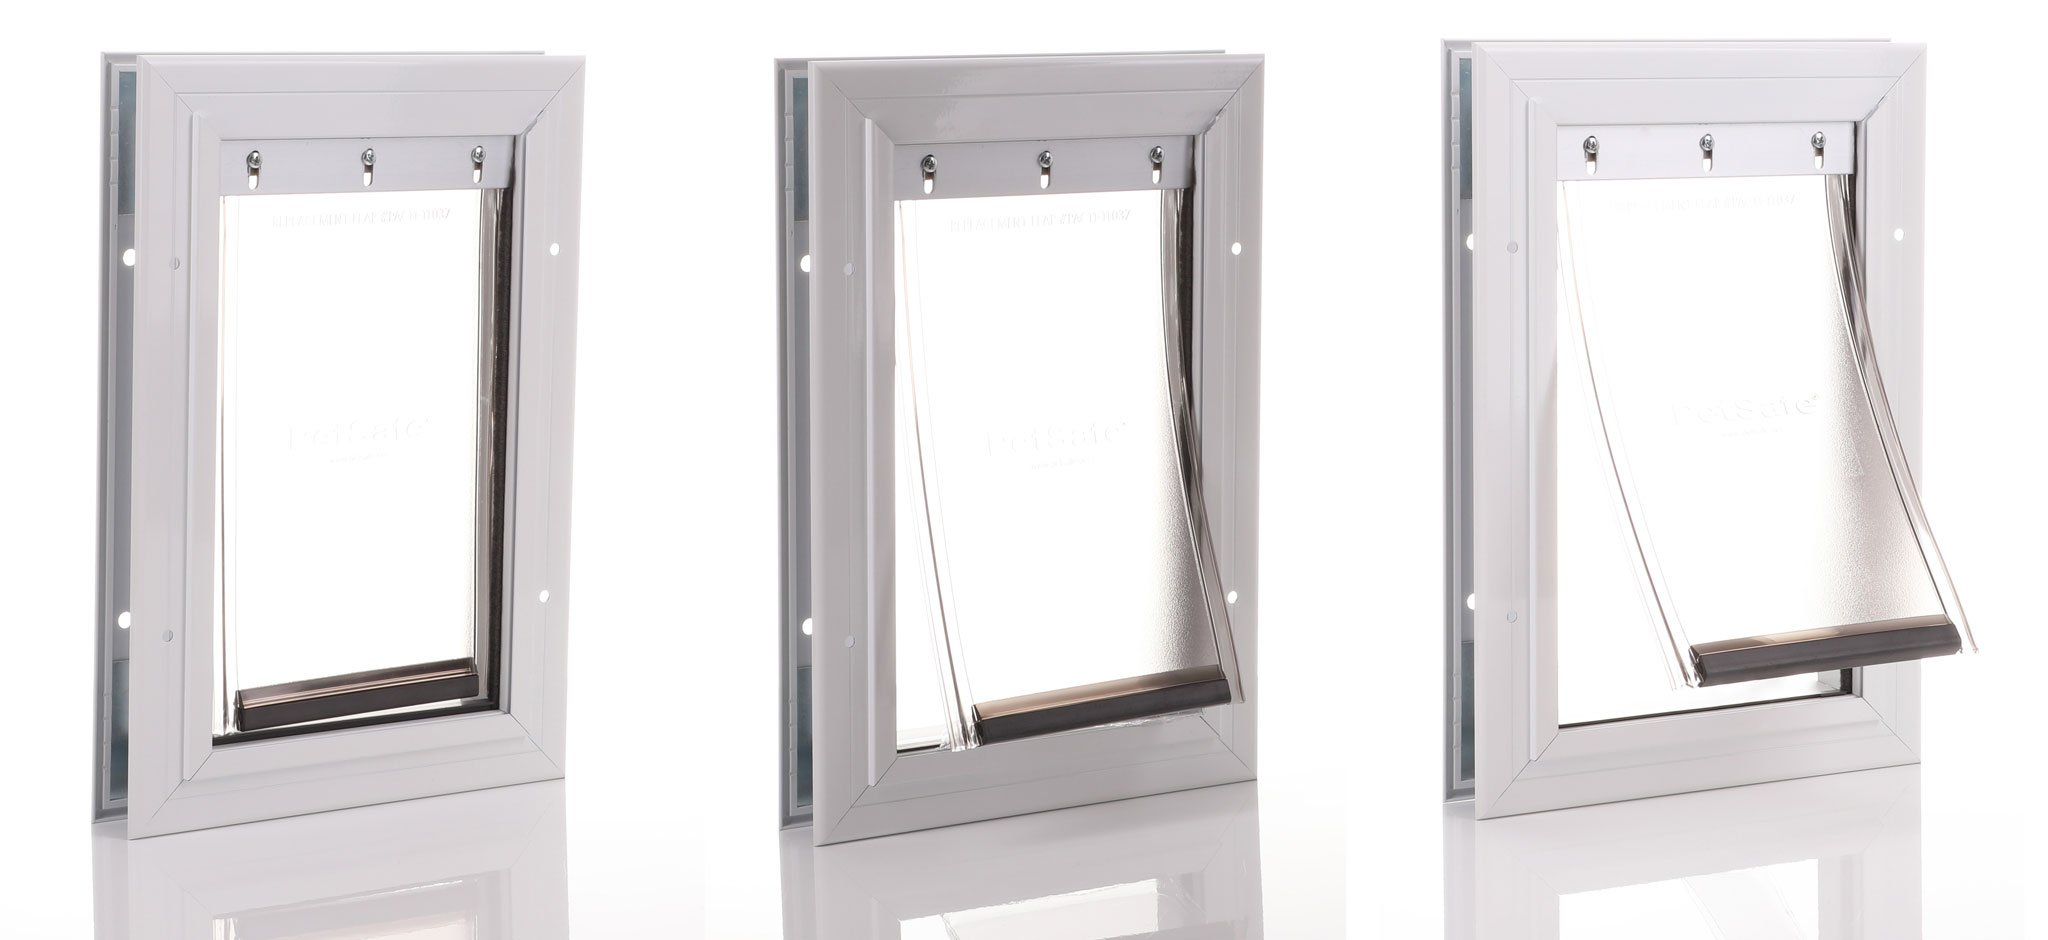 Quality design and materials to create a sturdy dog door.